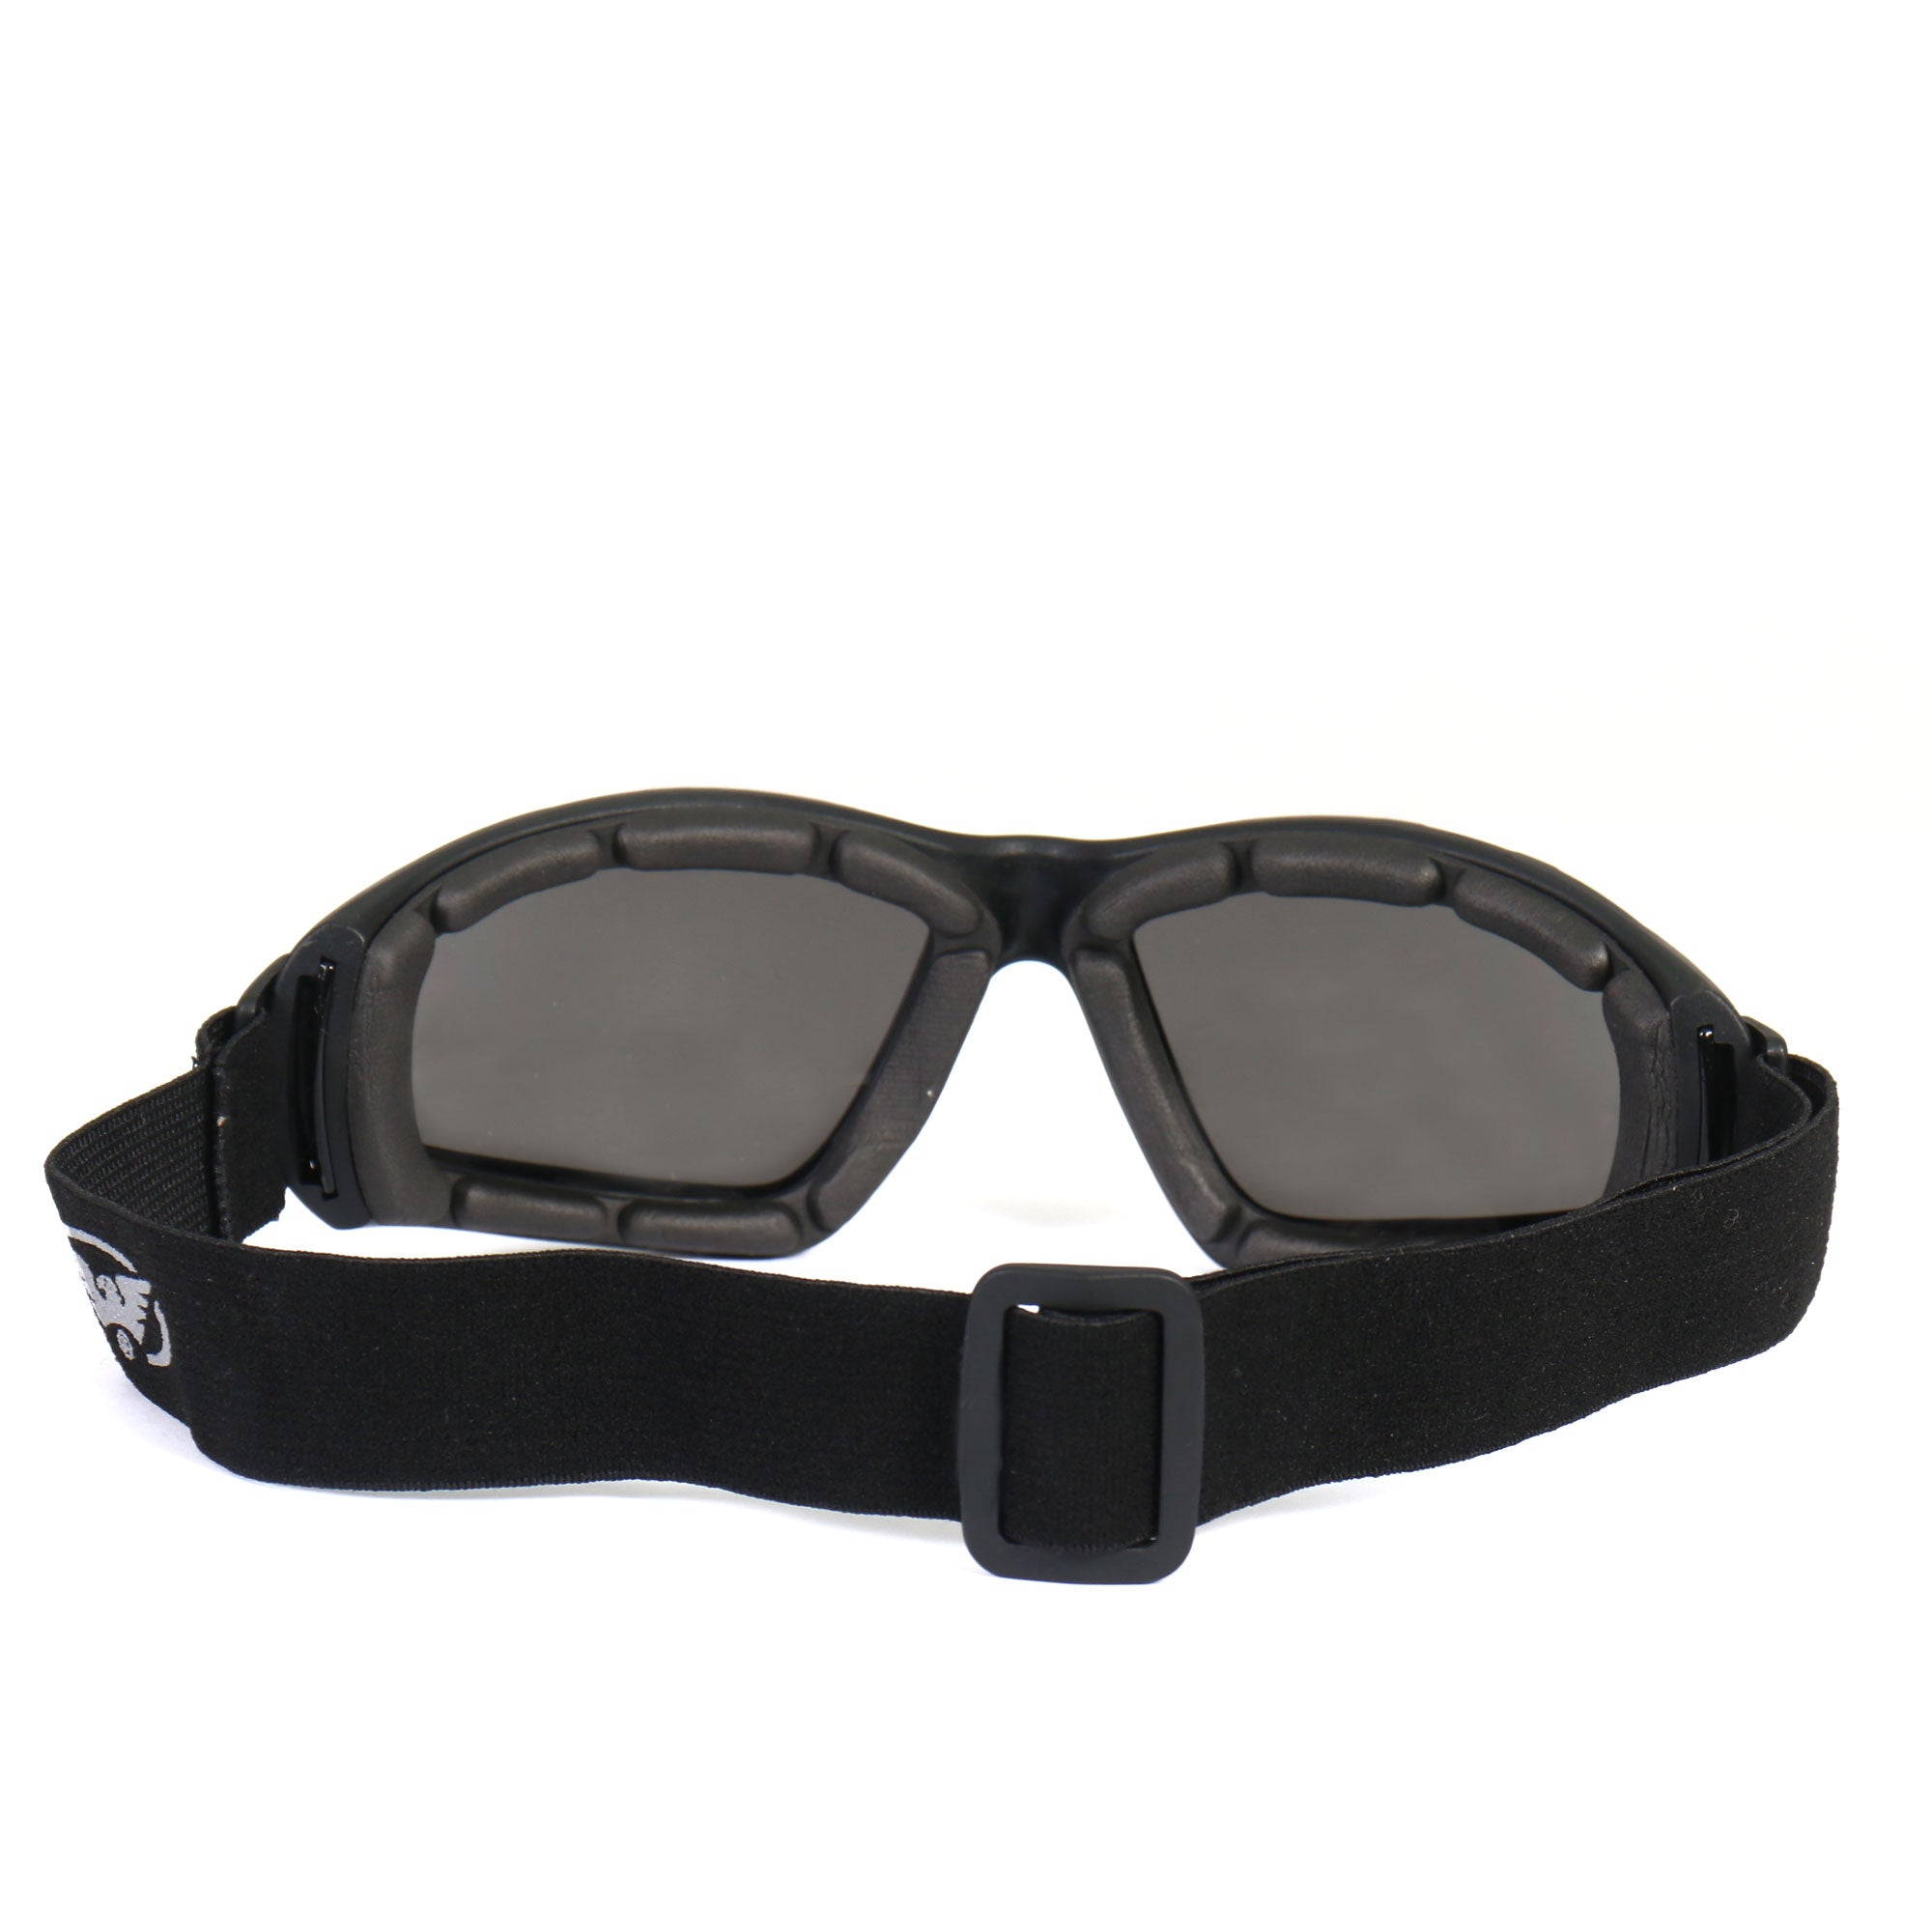 Hot Leathers Safety Shooter Safety Goggles - Smoke Lenses